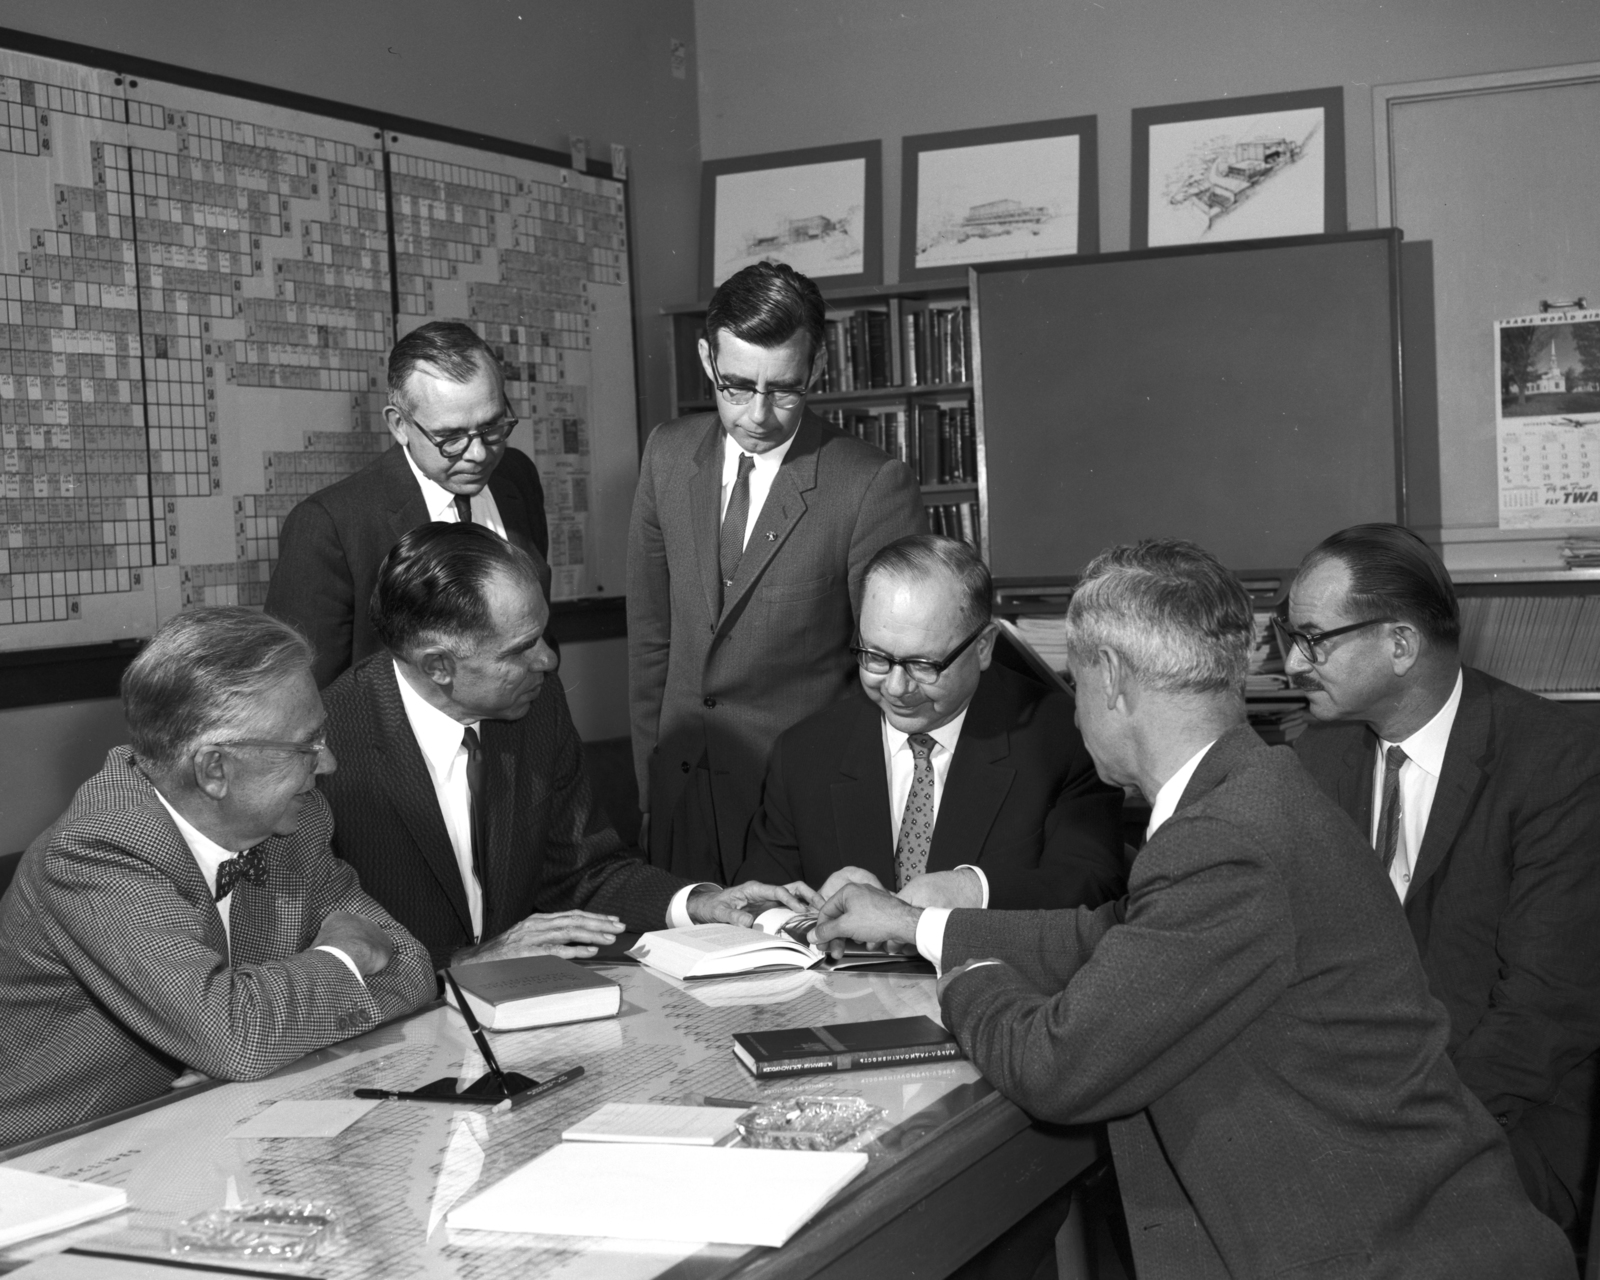 Emilio Segre, Glenn Seaborg, unknown individual, Hyde, V.I. Spitsyn ( Russian visitor), Edwin McMillan, and Isadore Perlman (head turned), taken October 20, 1960. Morgue 1960-26 (P-3) [Photographer: Donald Cooksey]